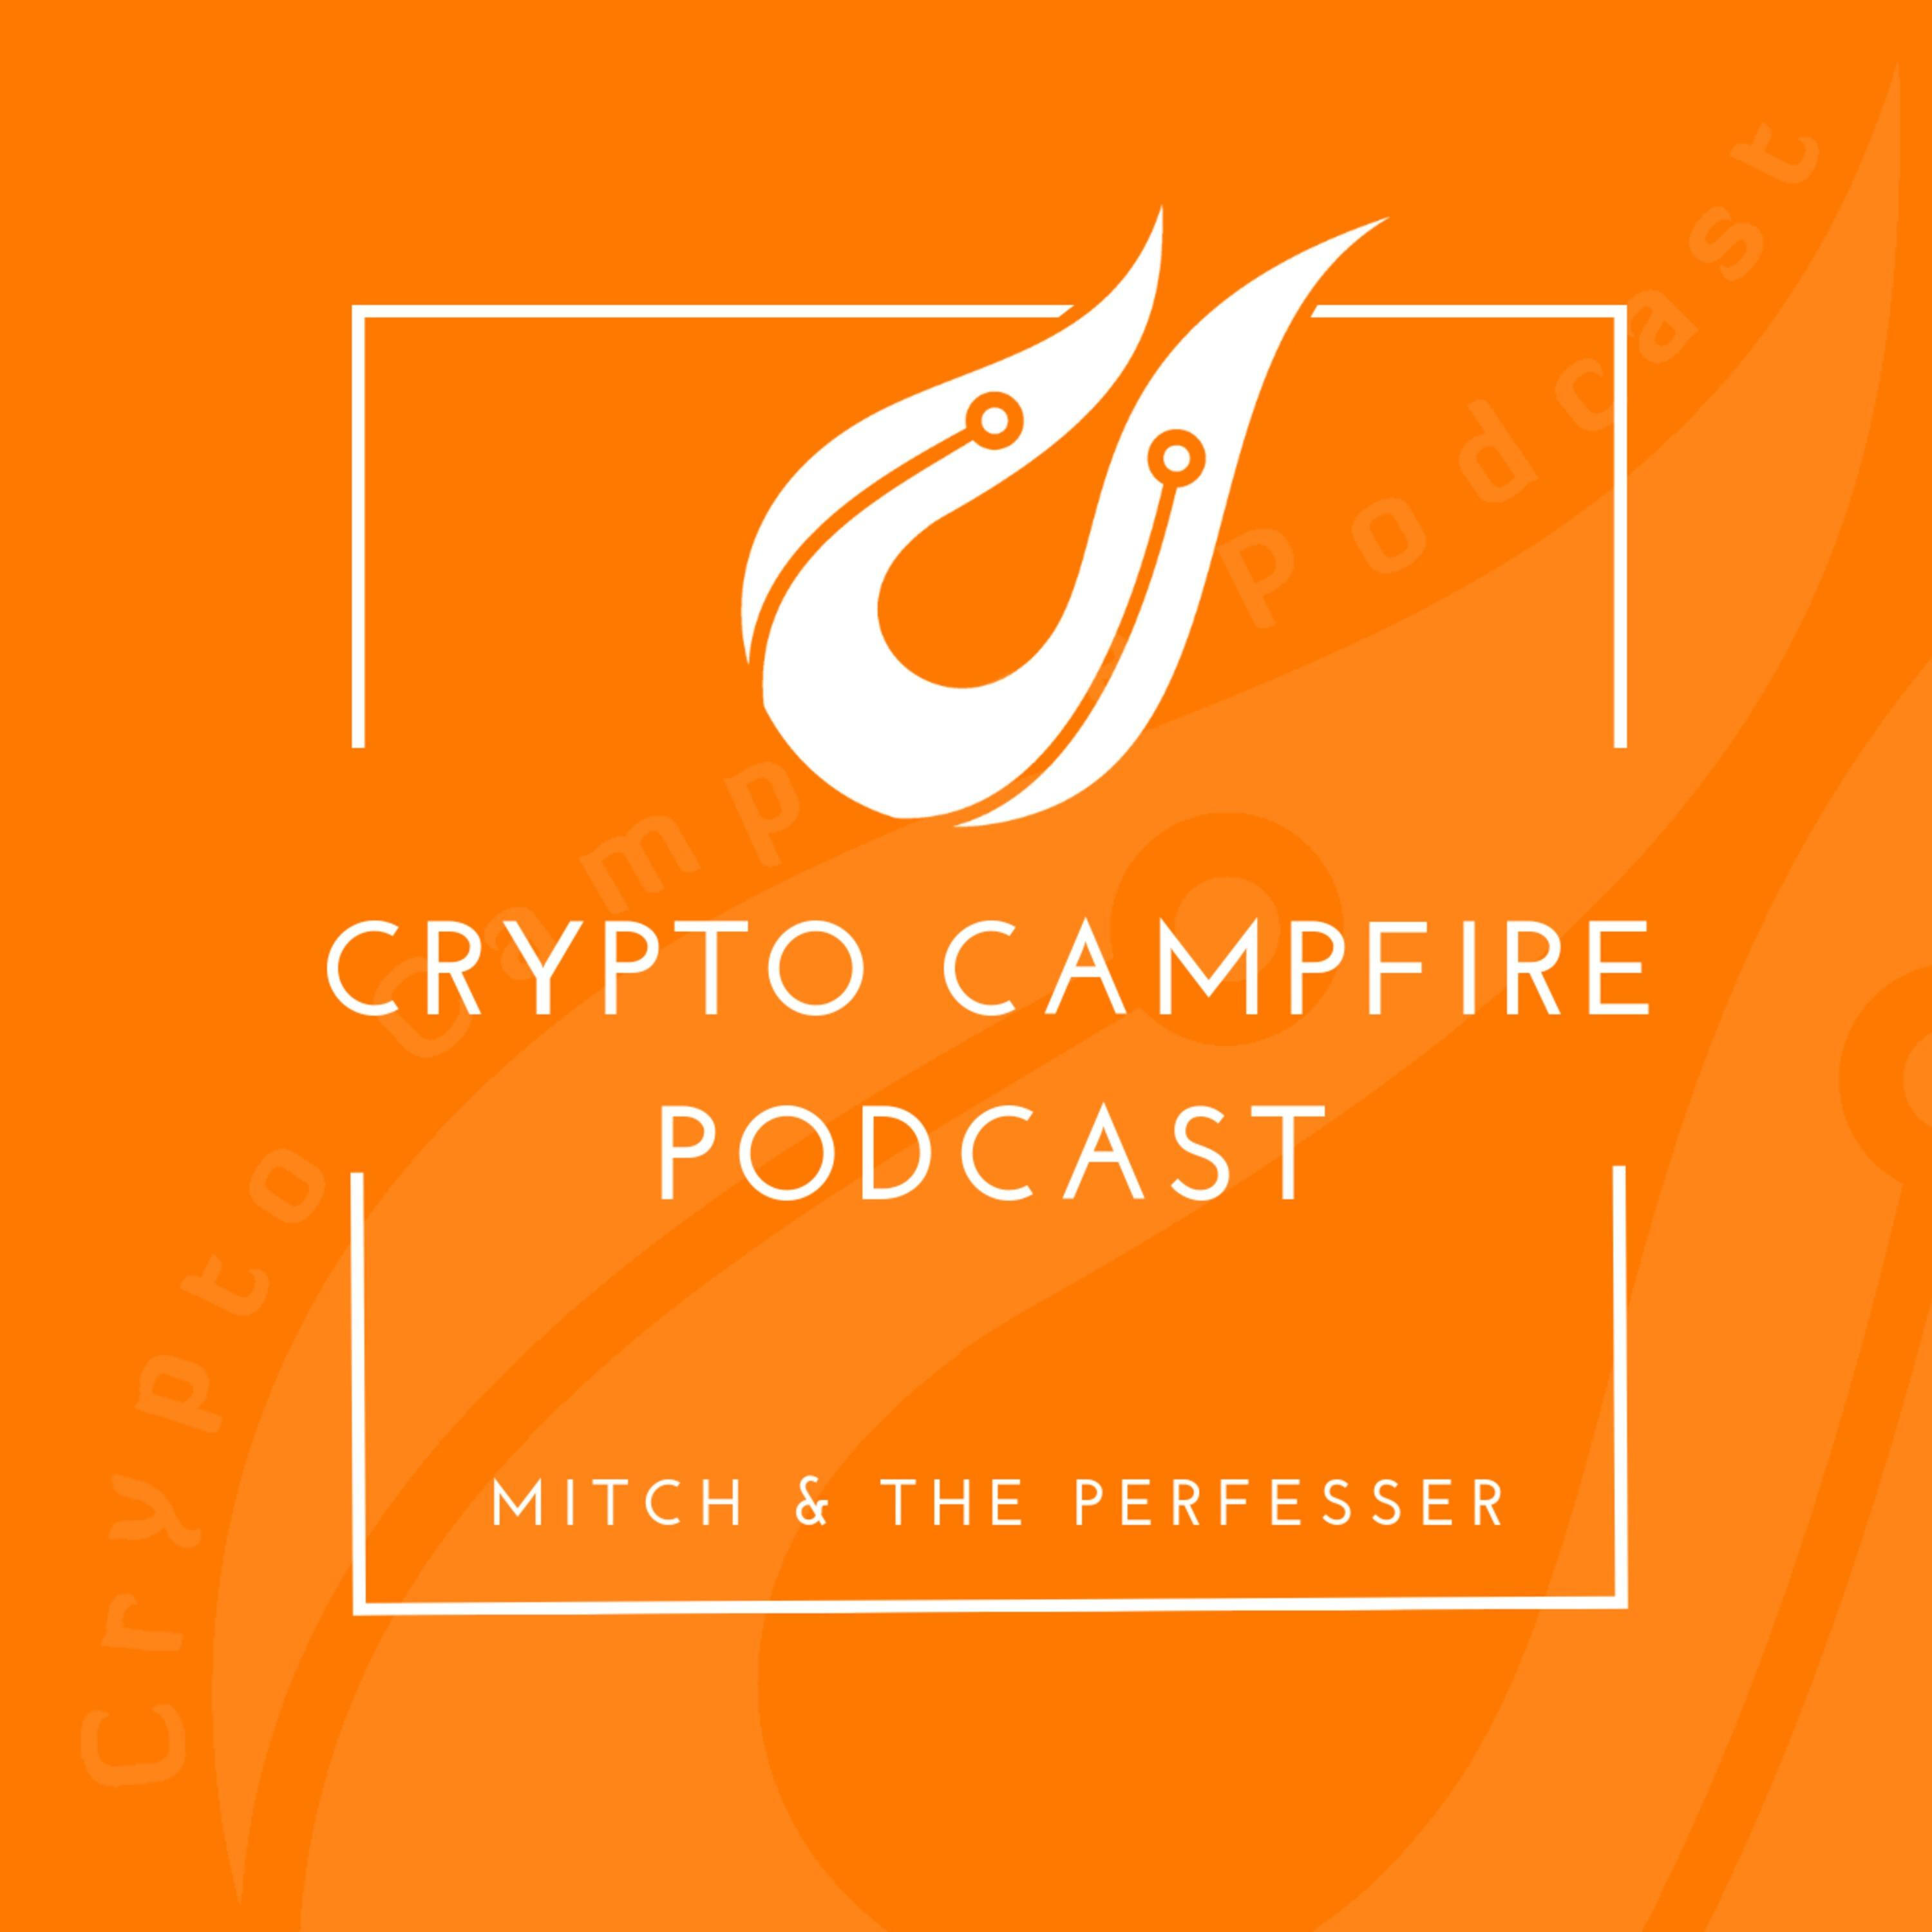 The Crypto Campfire Podcast